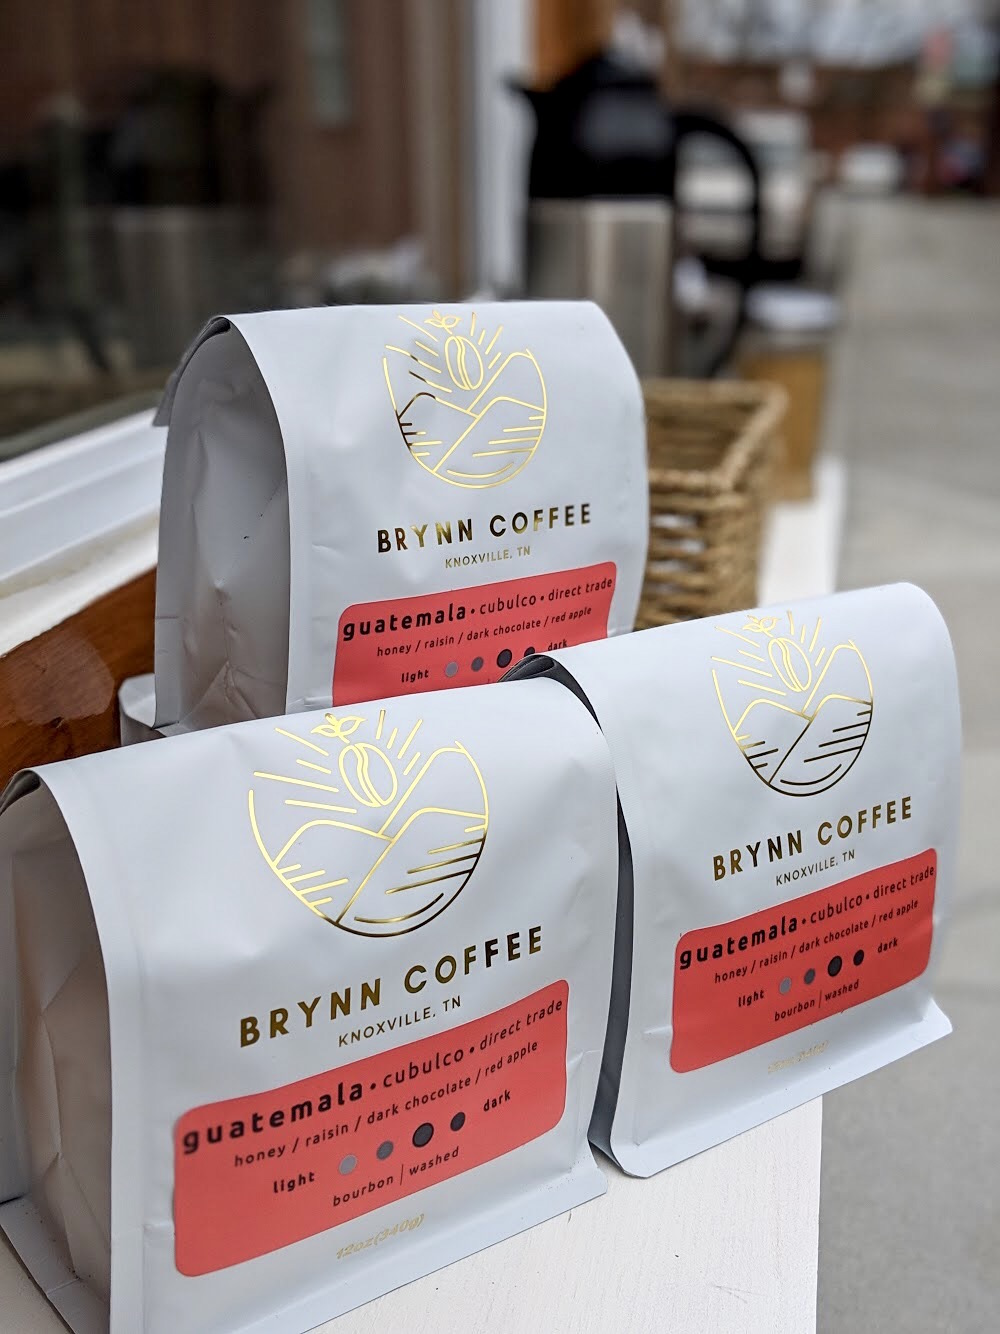 Brynn Coffee Knoxville